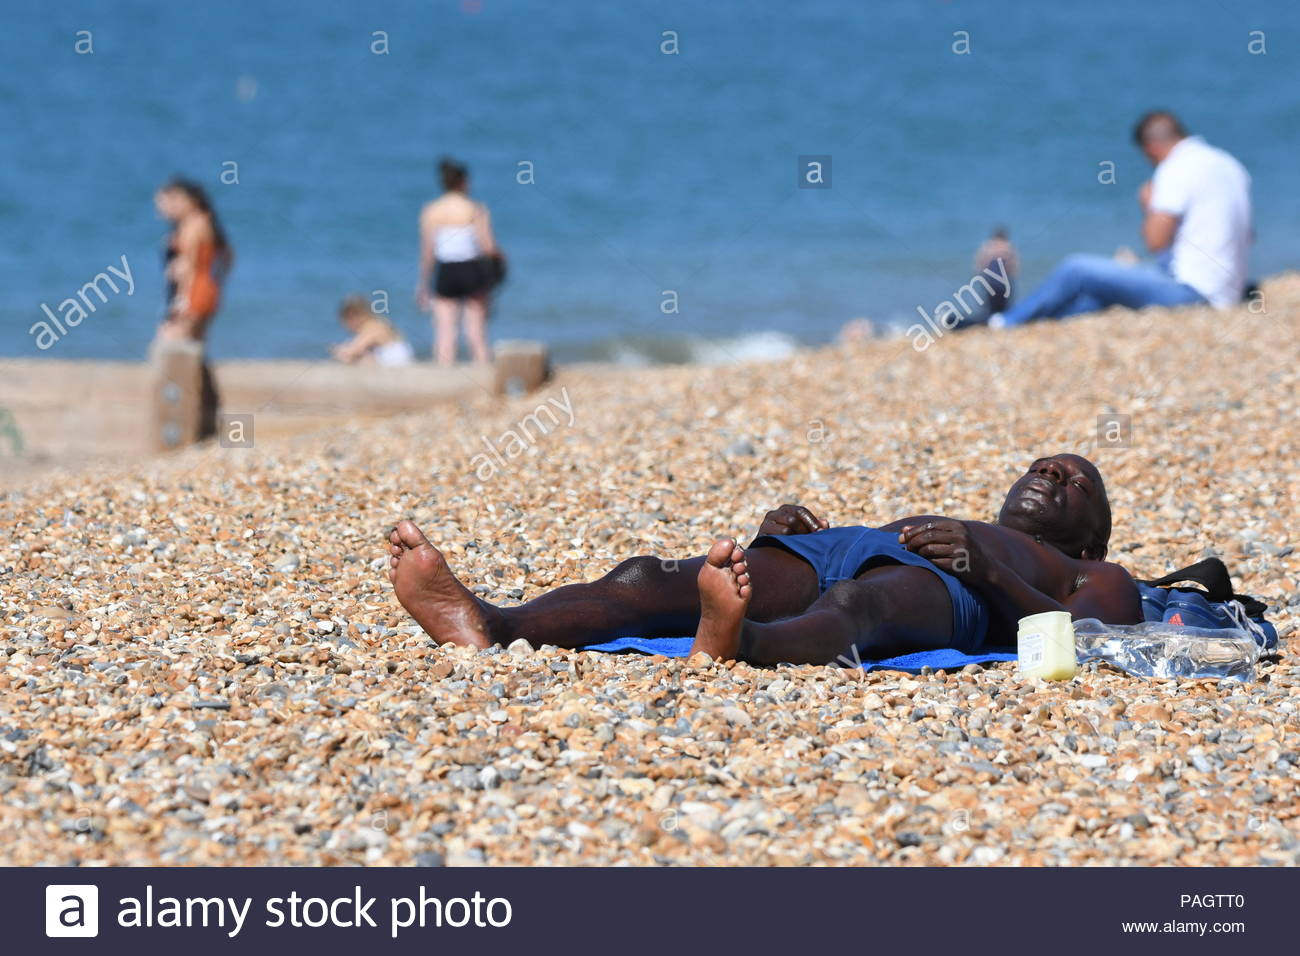 Brighton, East Sussex, UK. Monday 23rd July 2018. A man lays on the beach on another hot and sunny morning in Brighton. The temperature is expected to reach 24C today, reaching into the 30s by midweek. Credit: Geoff Smith / Alamy Live News Stock Photo